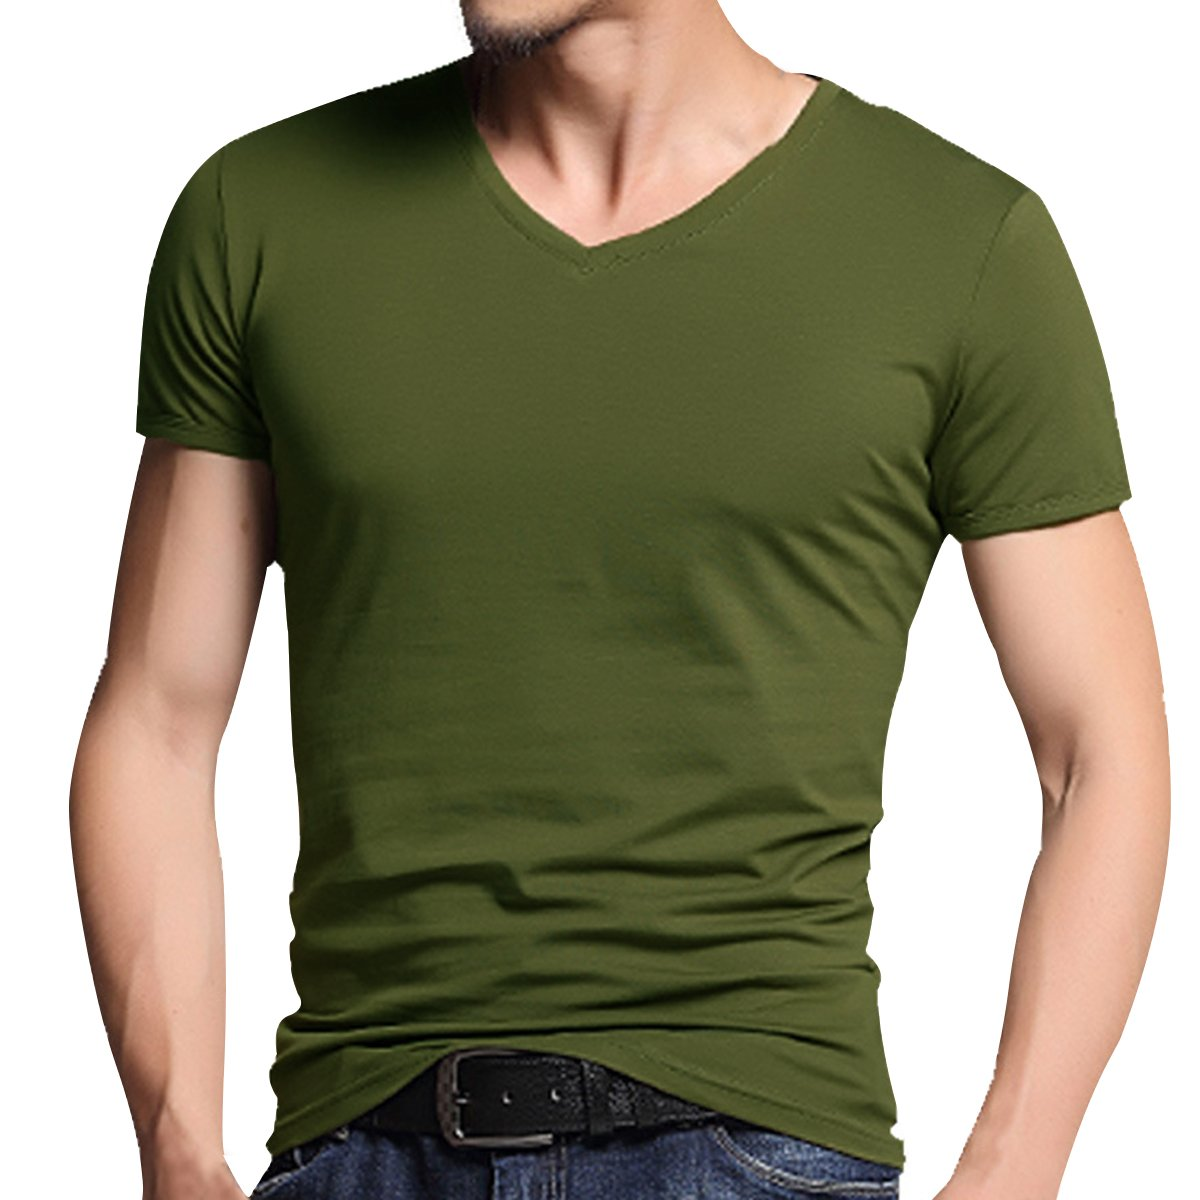 04c9ada9808 Machine Wash Please choose correct US size when you place an order. Casual  tops, Cotton shirt, Summer shirt, Muscle fit, Blank t shirt, Solid color